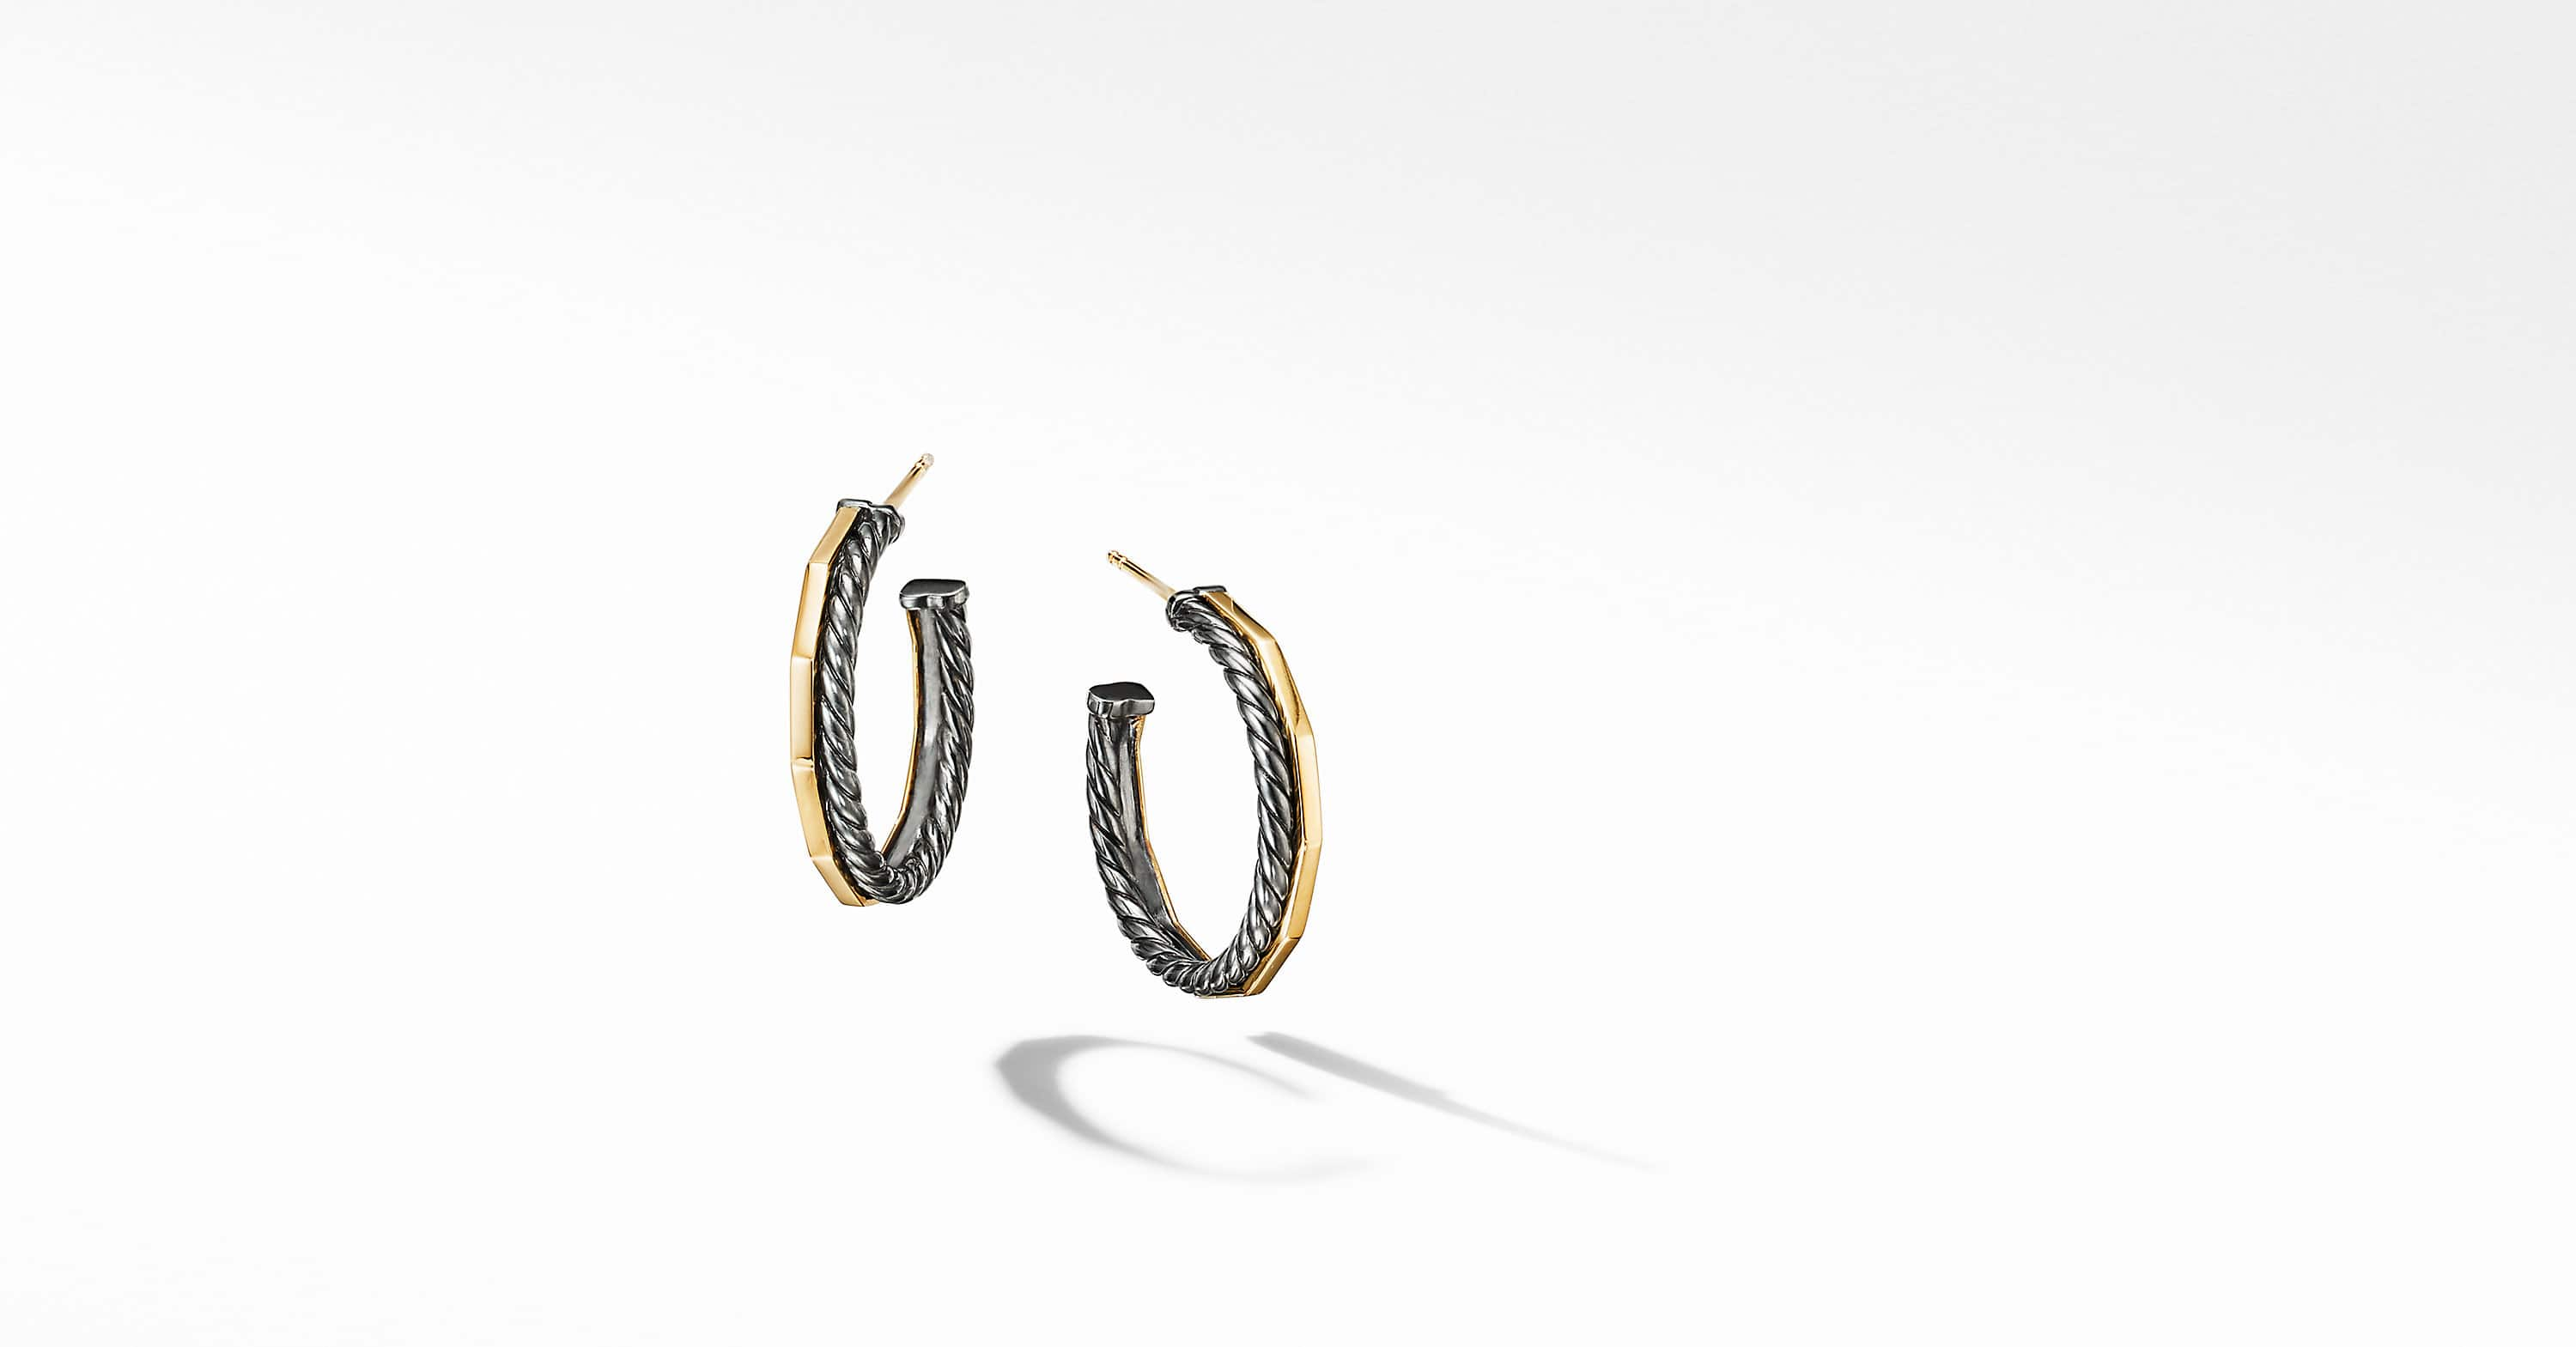 Stax Hoop Earrings in Blackened Silver